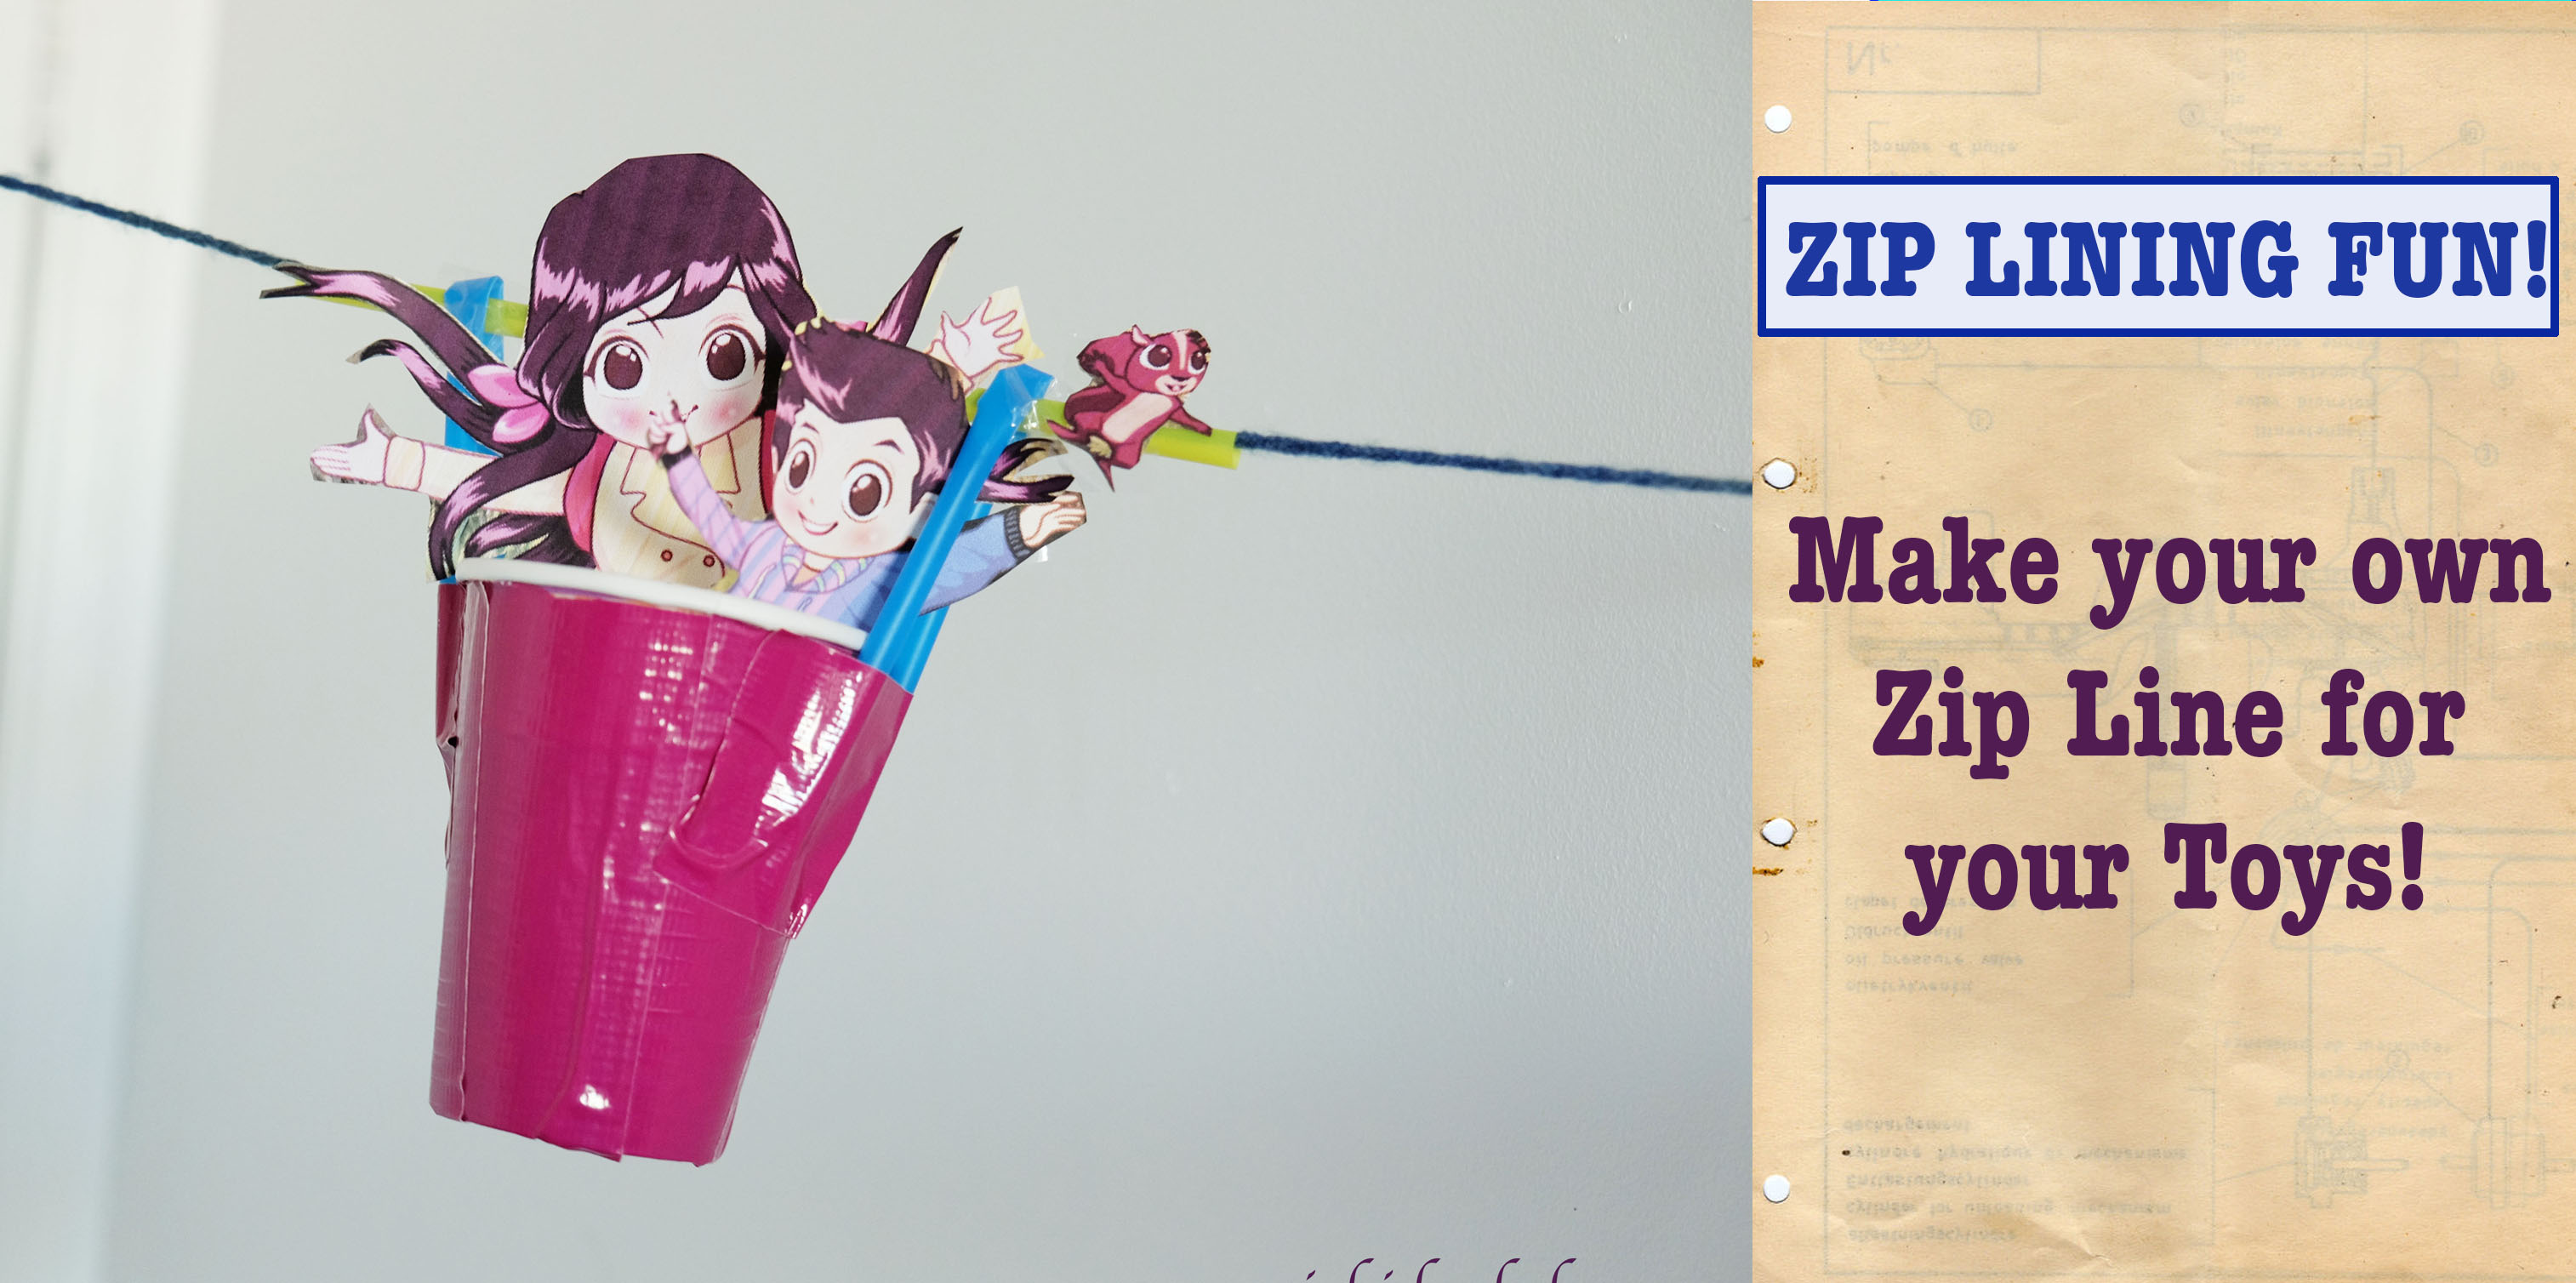 Zip-lining Fun for this Season! How to make it with kids